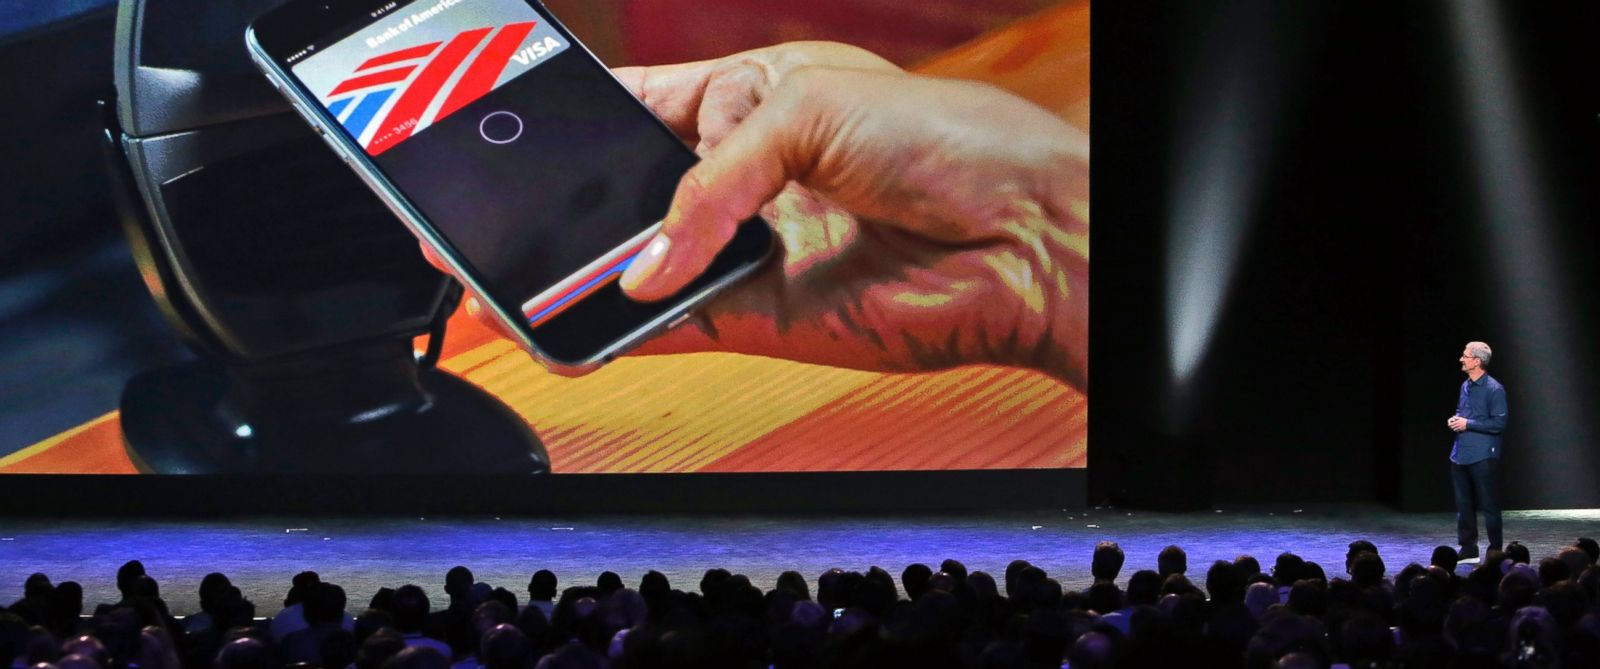 PHOTO: Apple CEO Tim Cook introduces the new Apple Pay product in Cupertino, Calif. on Sept. 9, 2014.